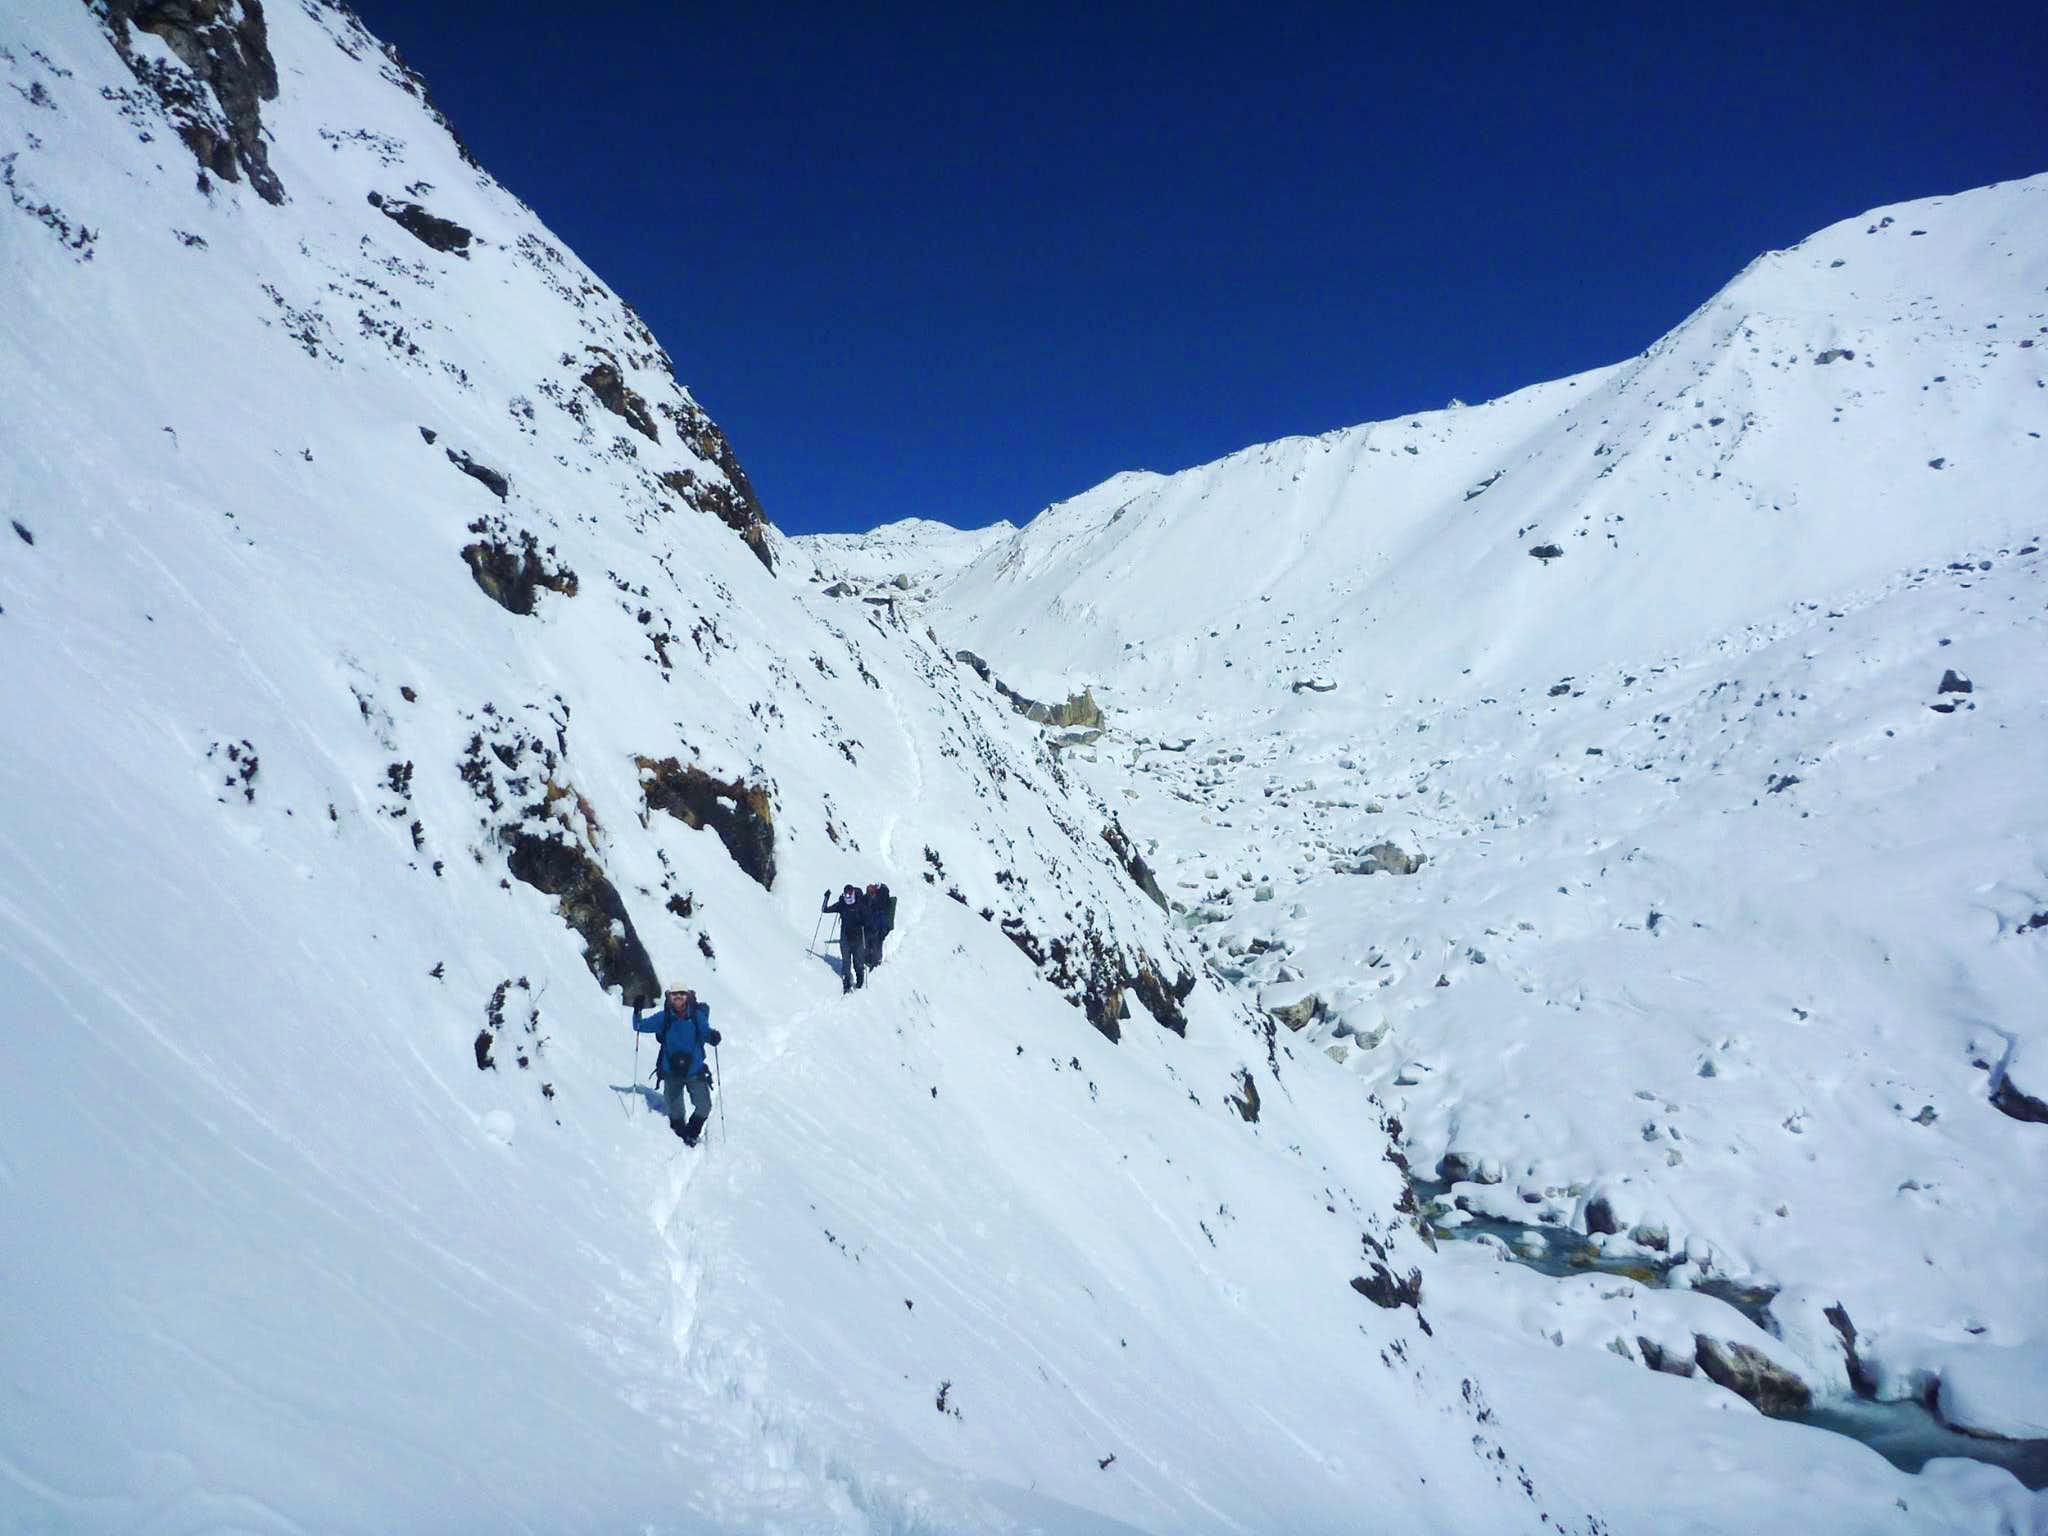 winter way toGokyo